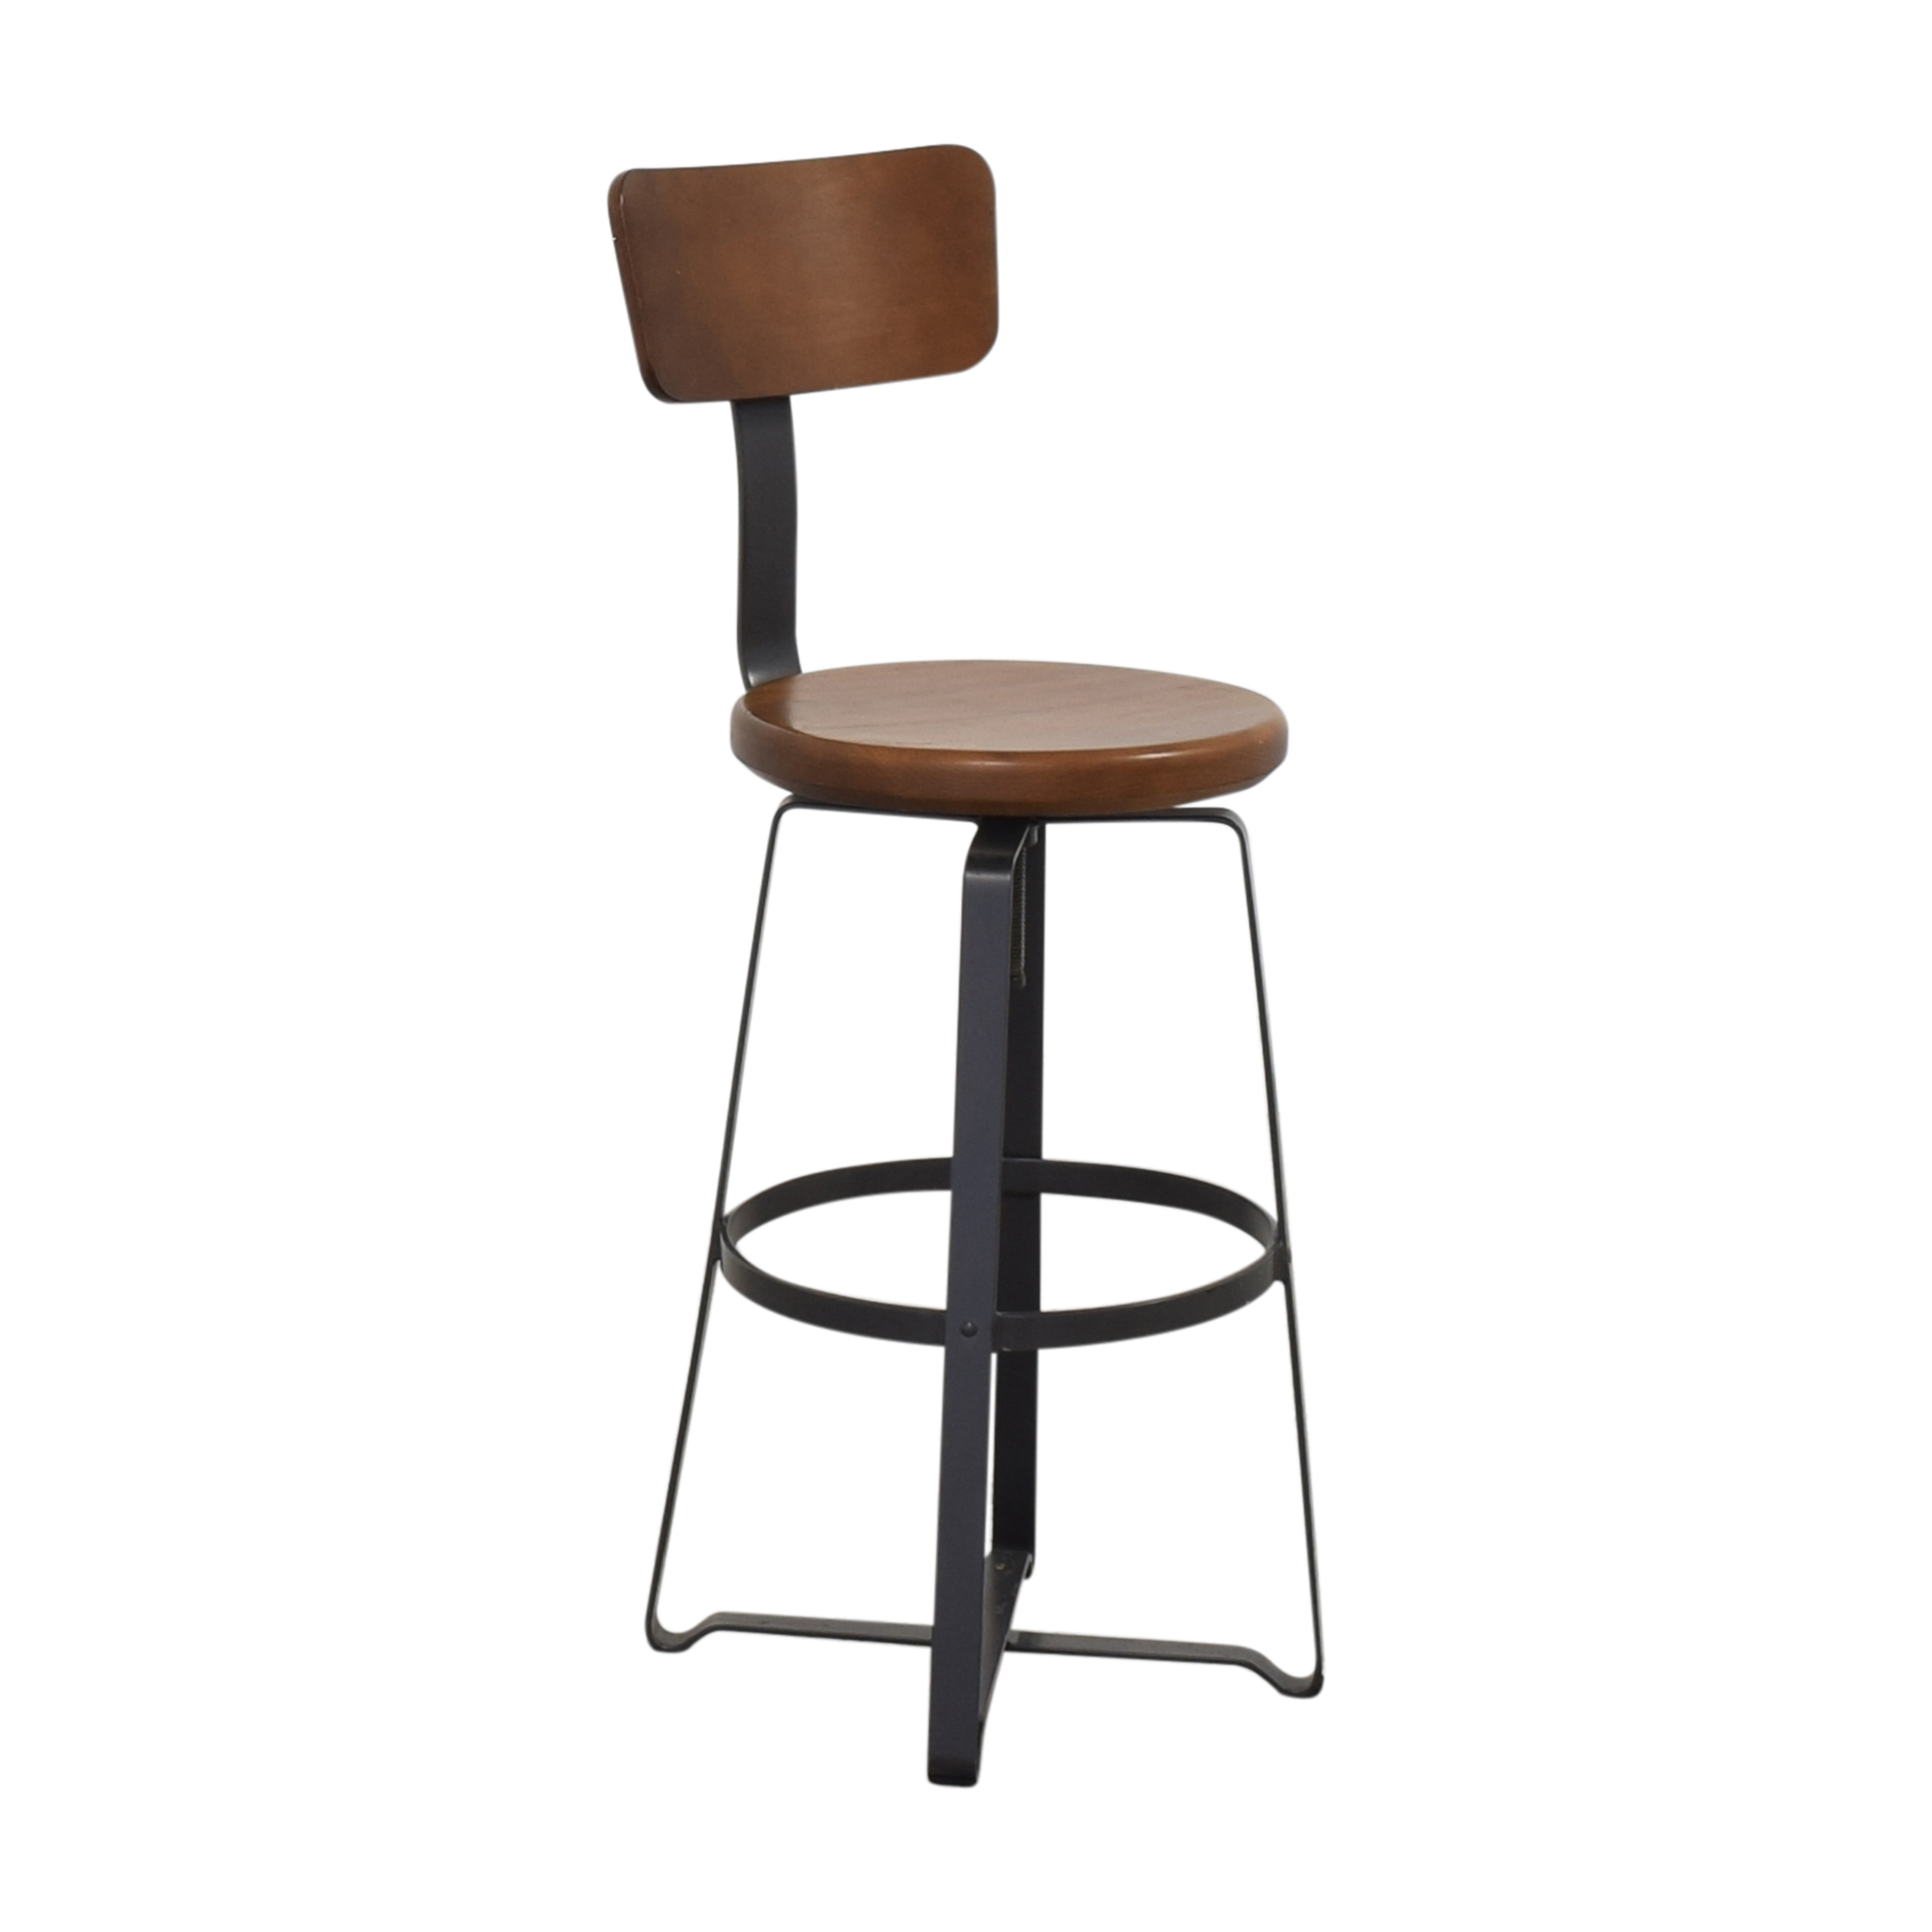 West Elm West Elm Adjustable Industrial Stool with Back on sale